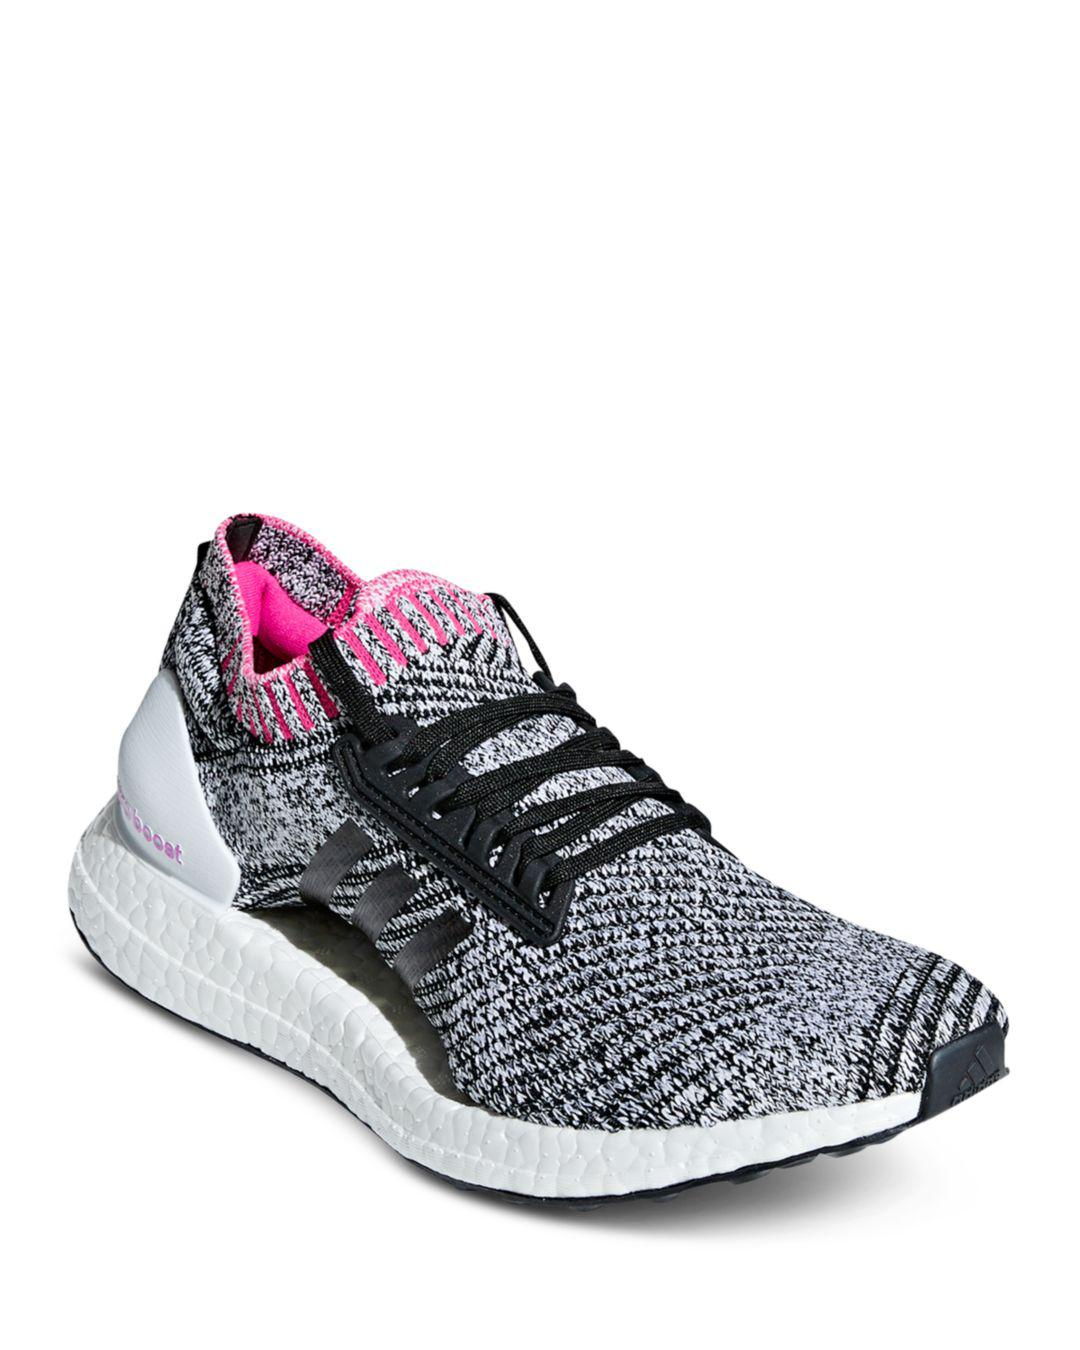 ace977d15 Lyst - adidas Women s Ultraboost X Primeknit Lace Up Sneakers - Save 51%